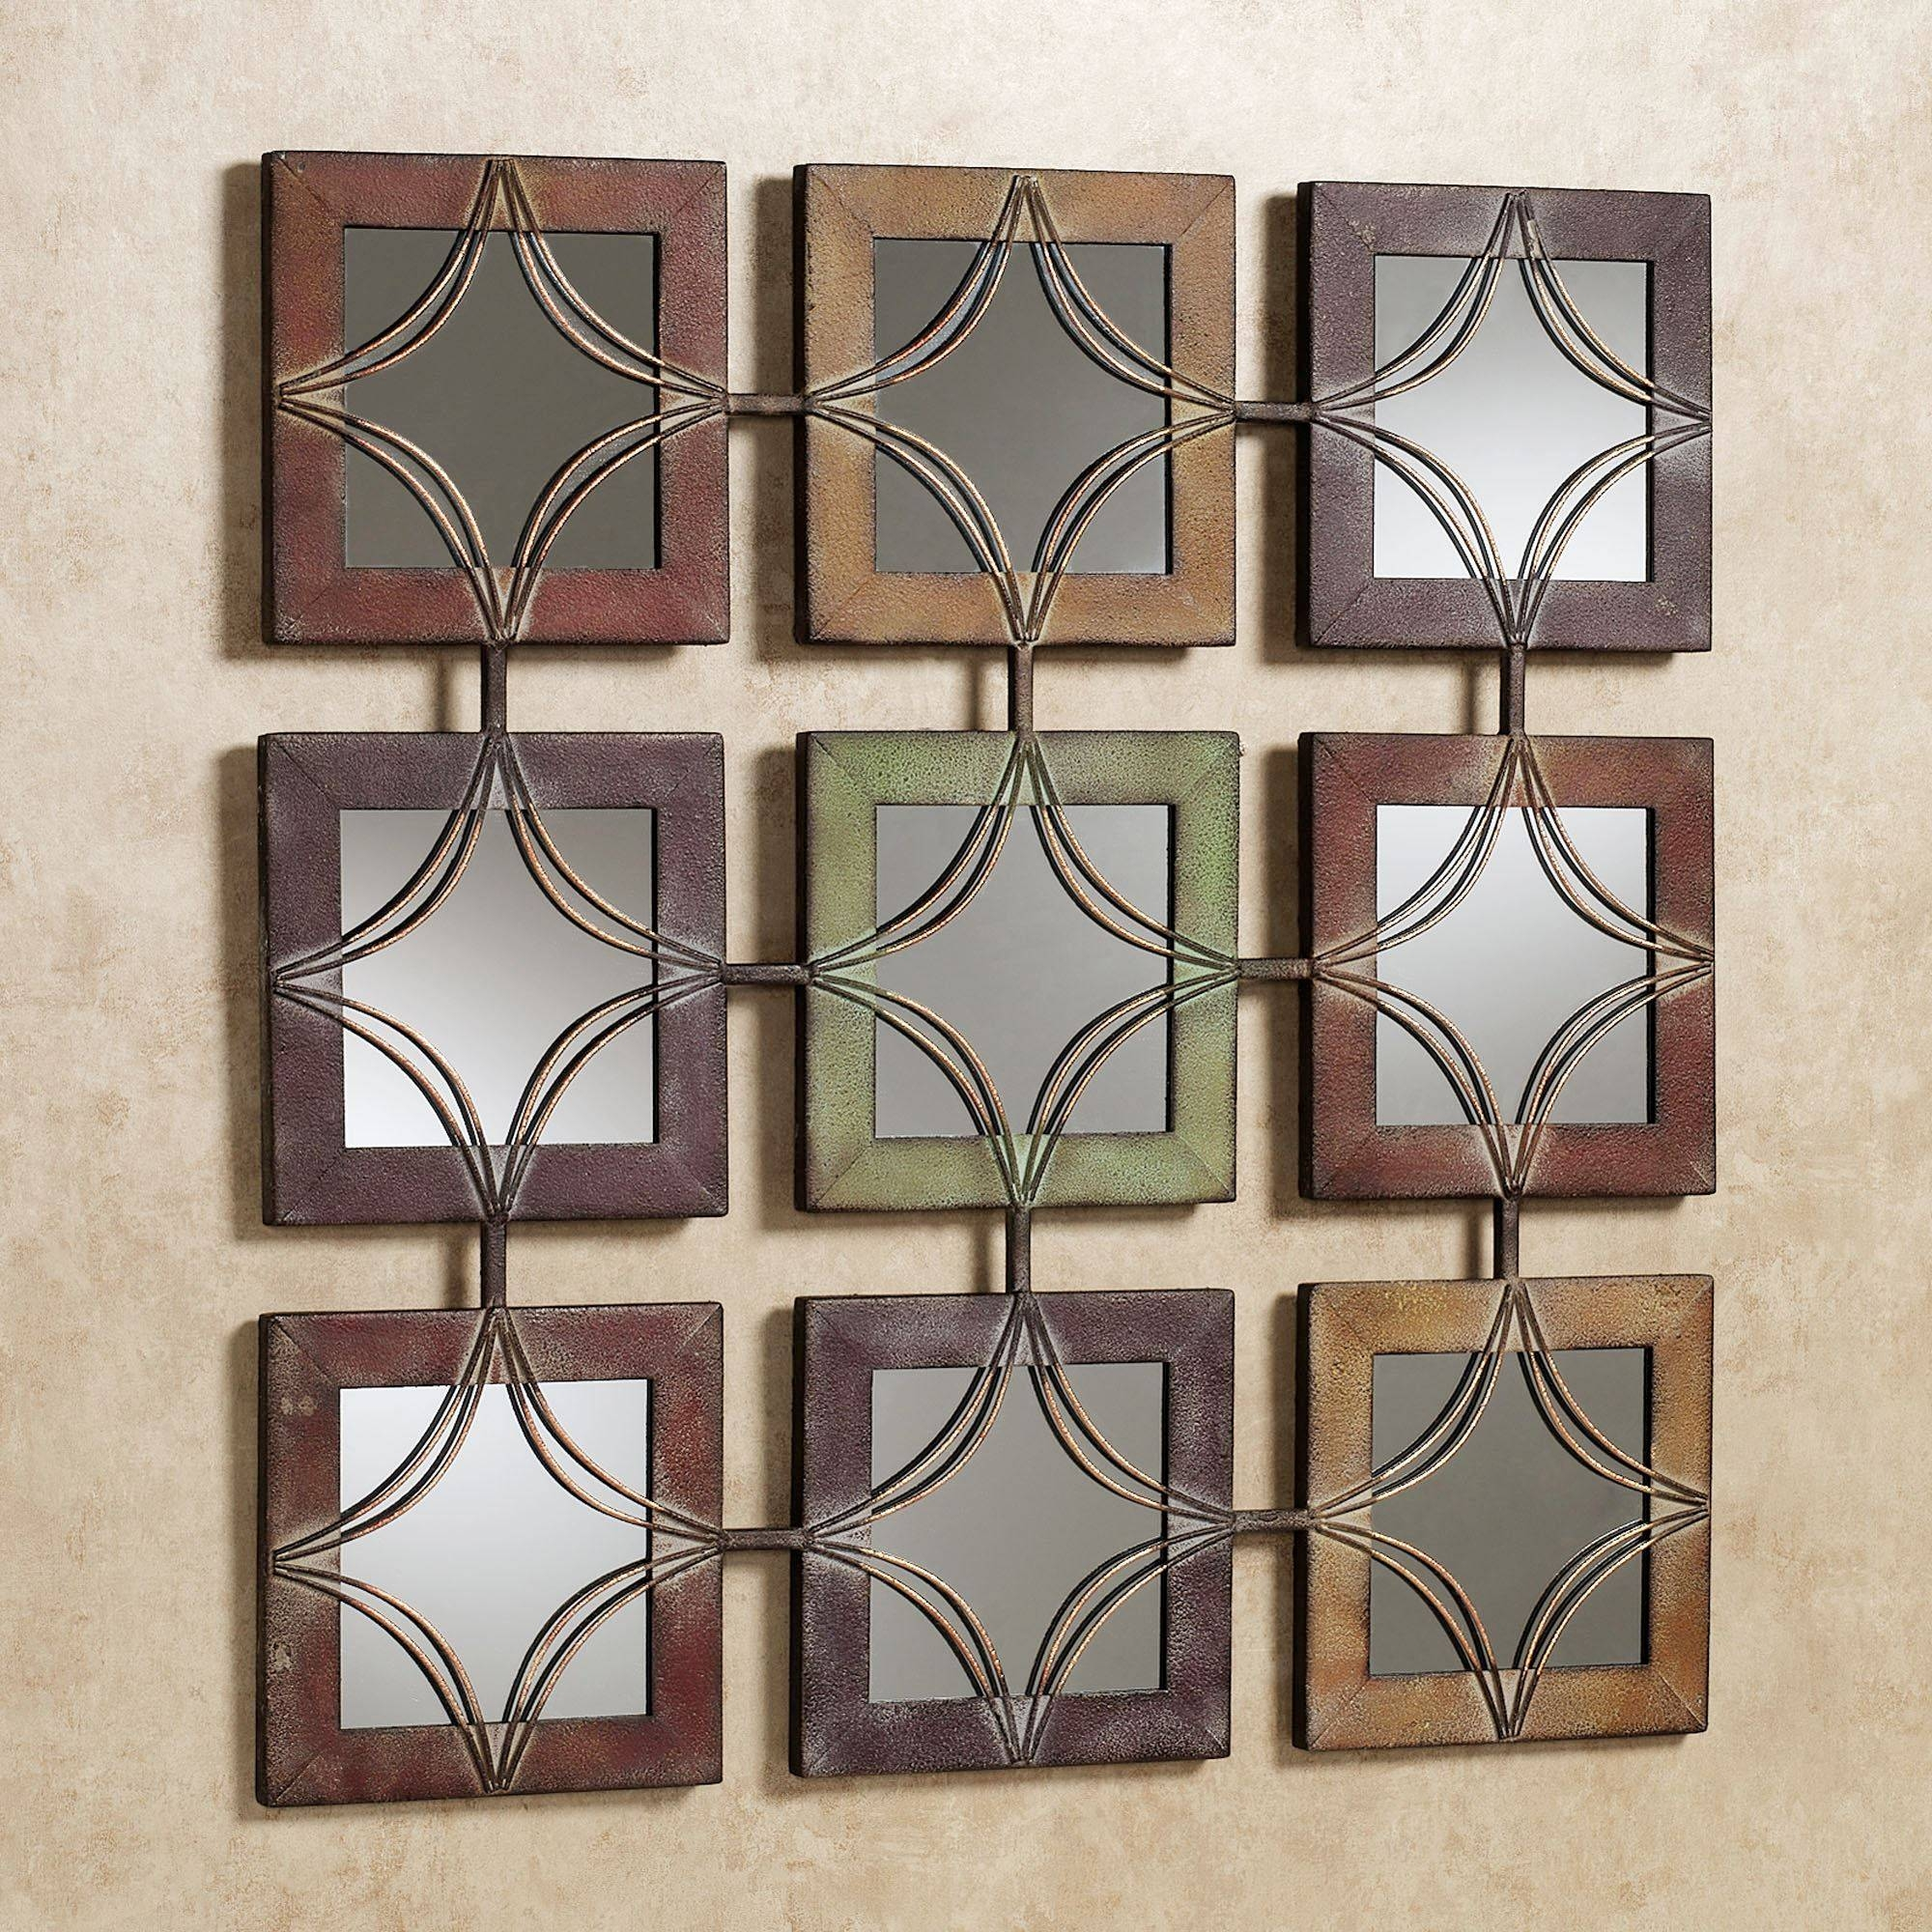 Domini Mirrored Metal Wall Art Inside Most Popular Metal Wall Art Decor (View 2 of 20)